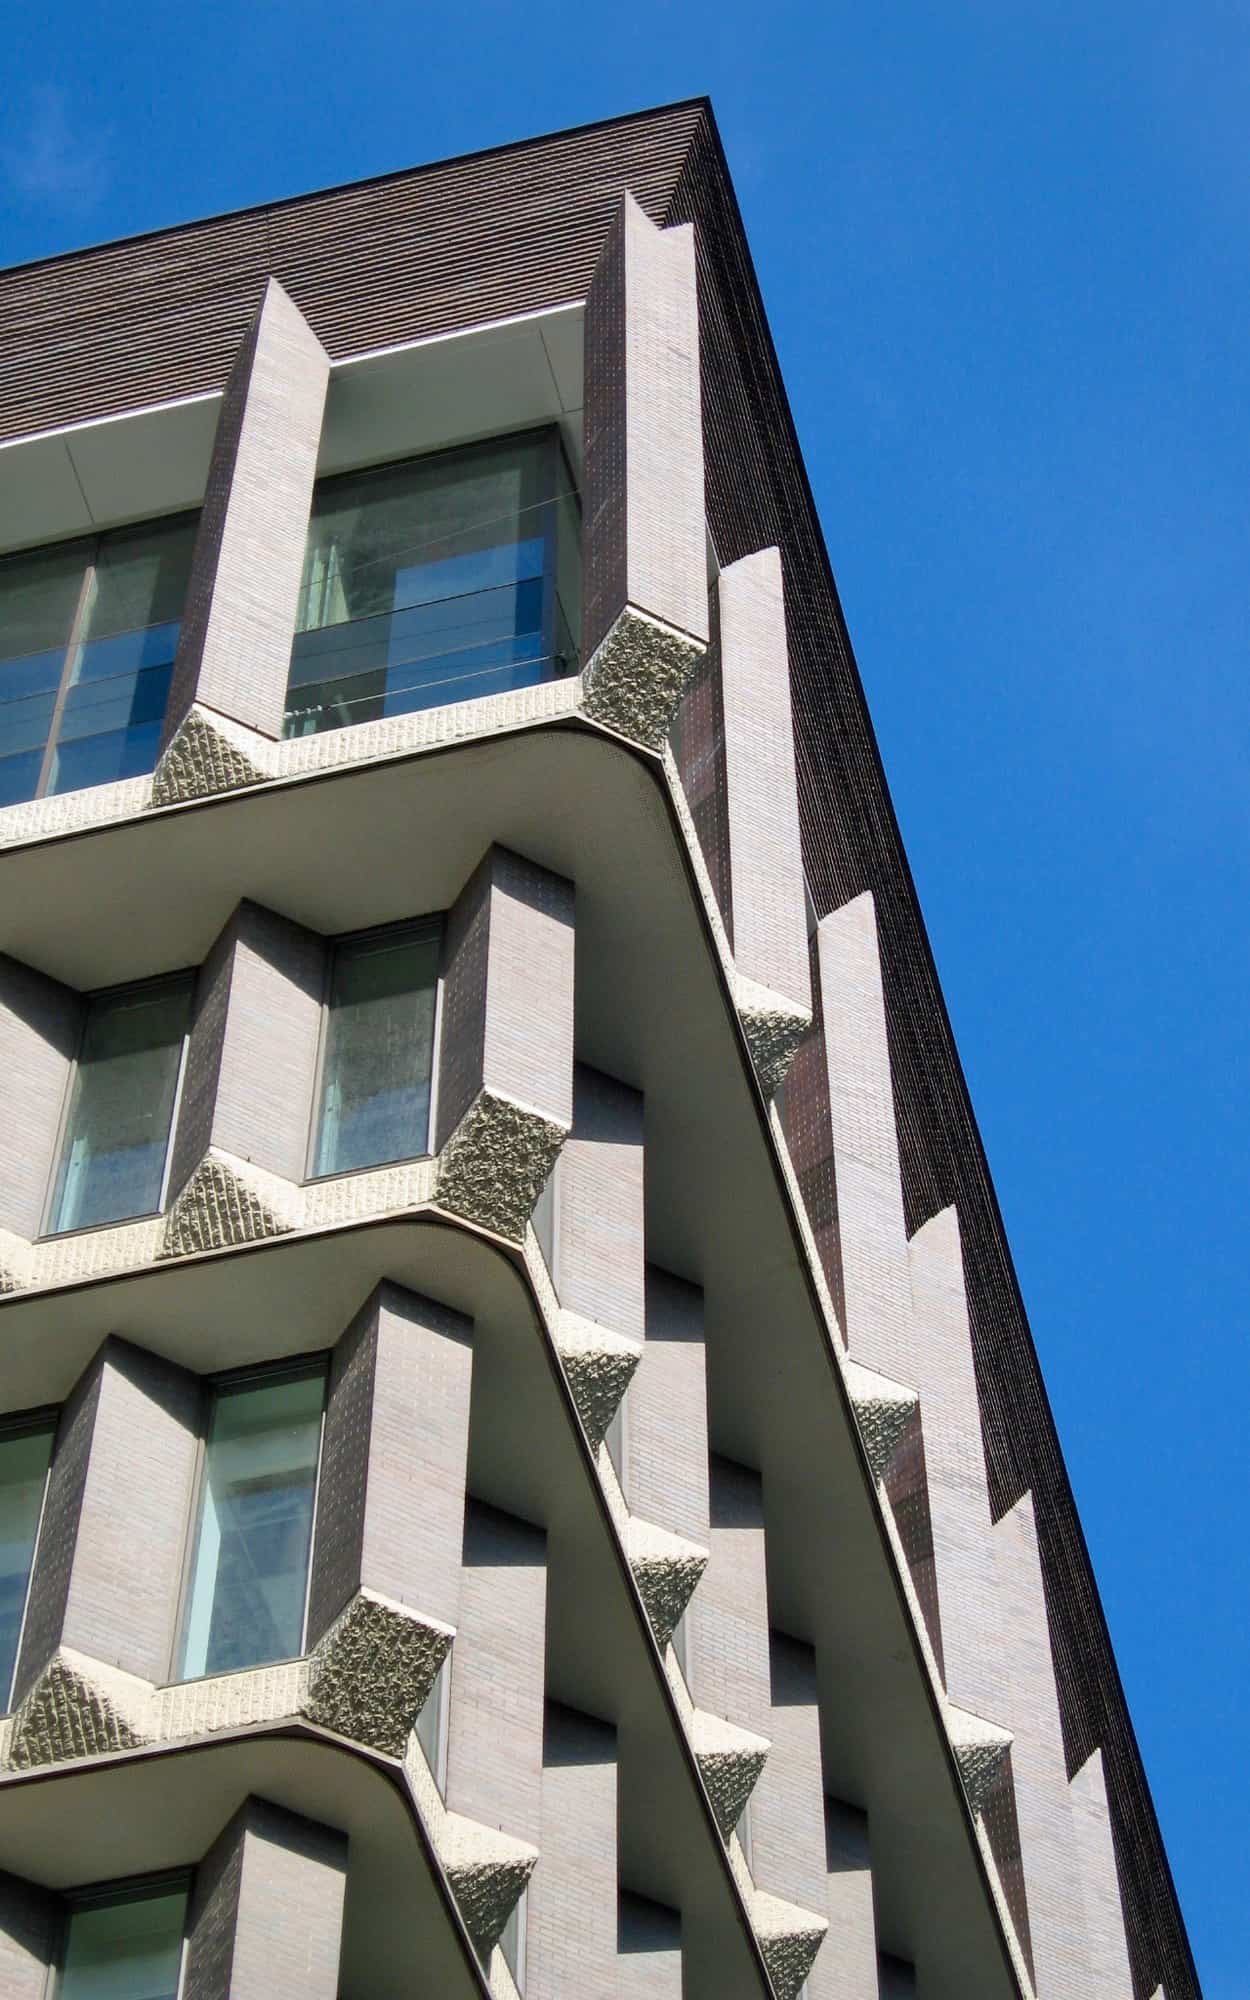 Detail highlighting the concrete and brick detailing near the top of the building